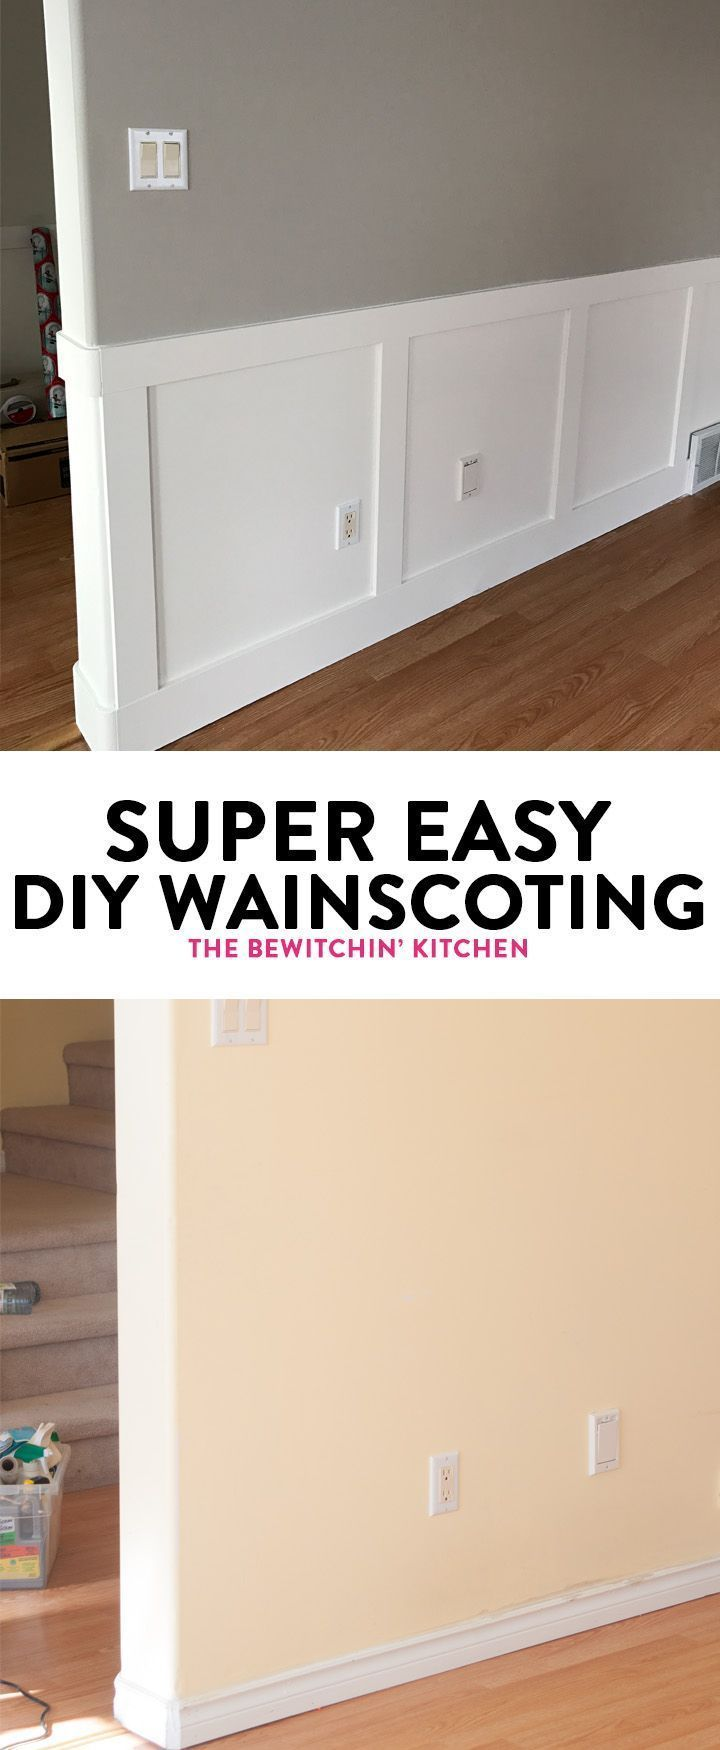 3 Easy Diy Storage Ideas For Small Kitchen: Benjamin Moore Cloud White